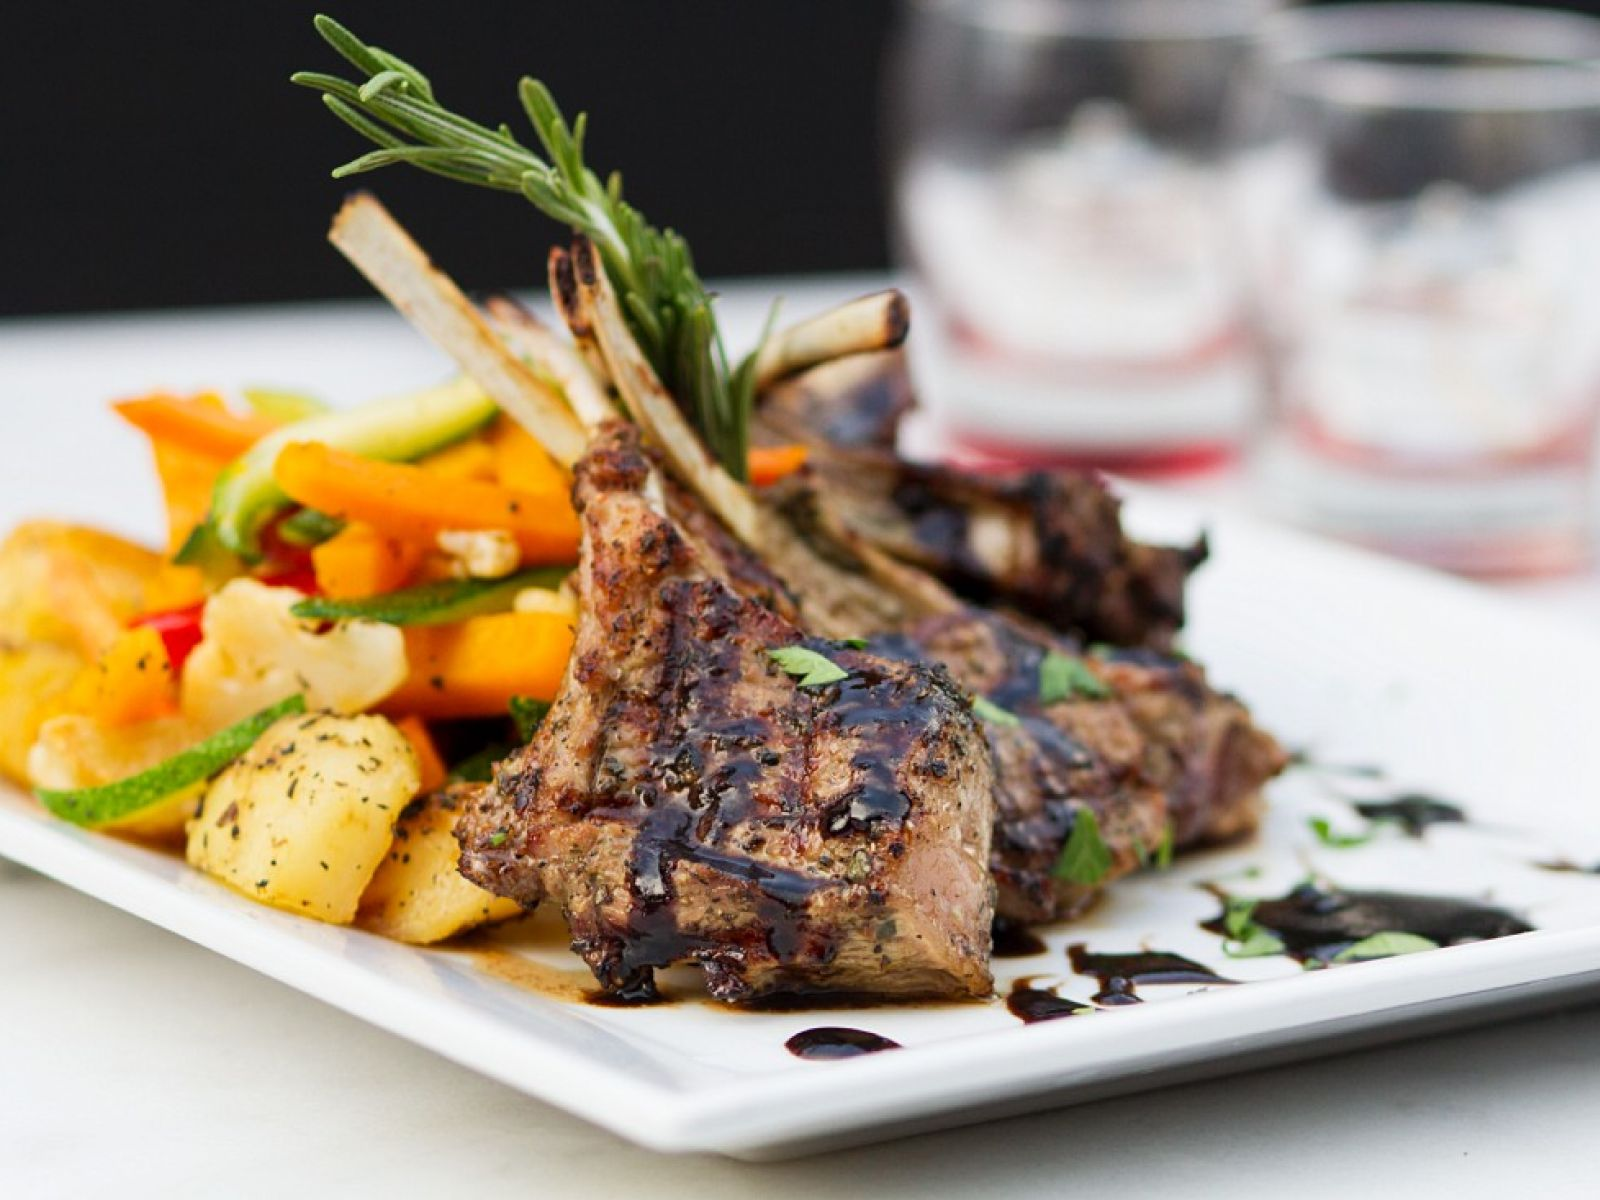 lamb chops with vegetables recipe Grilled Lamb Chops with Mixed Vegetables